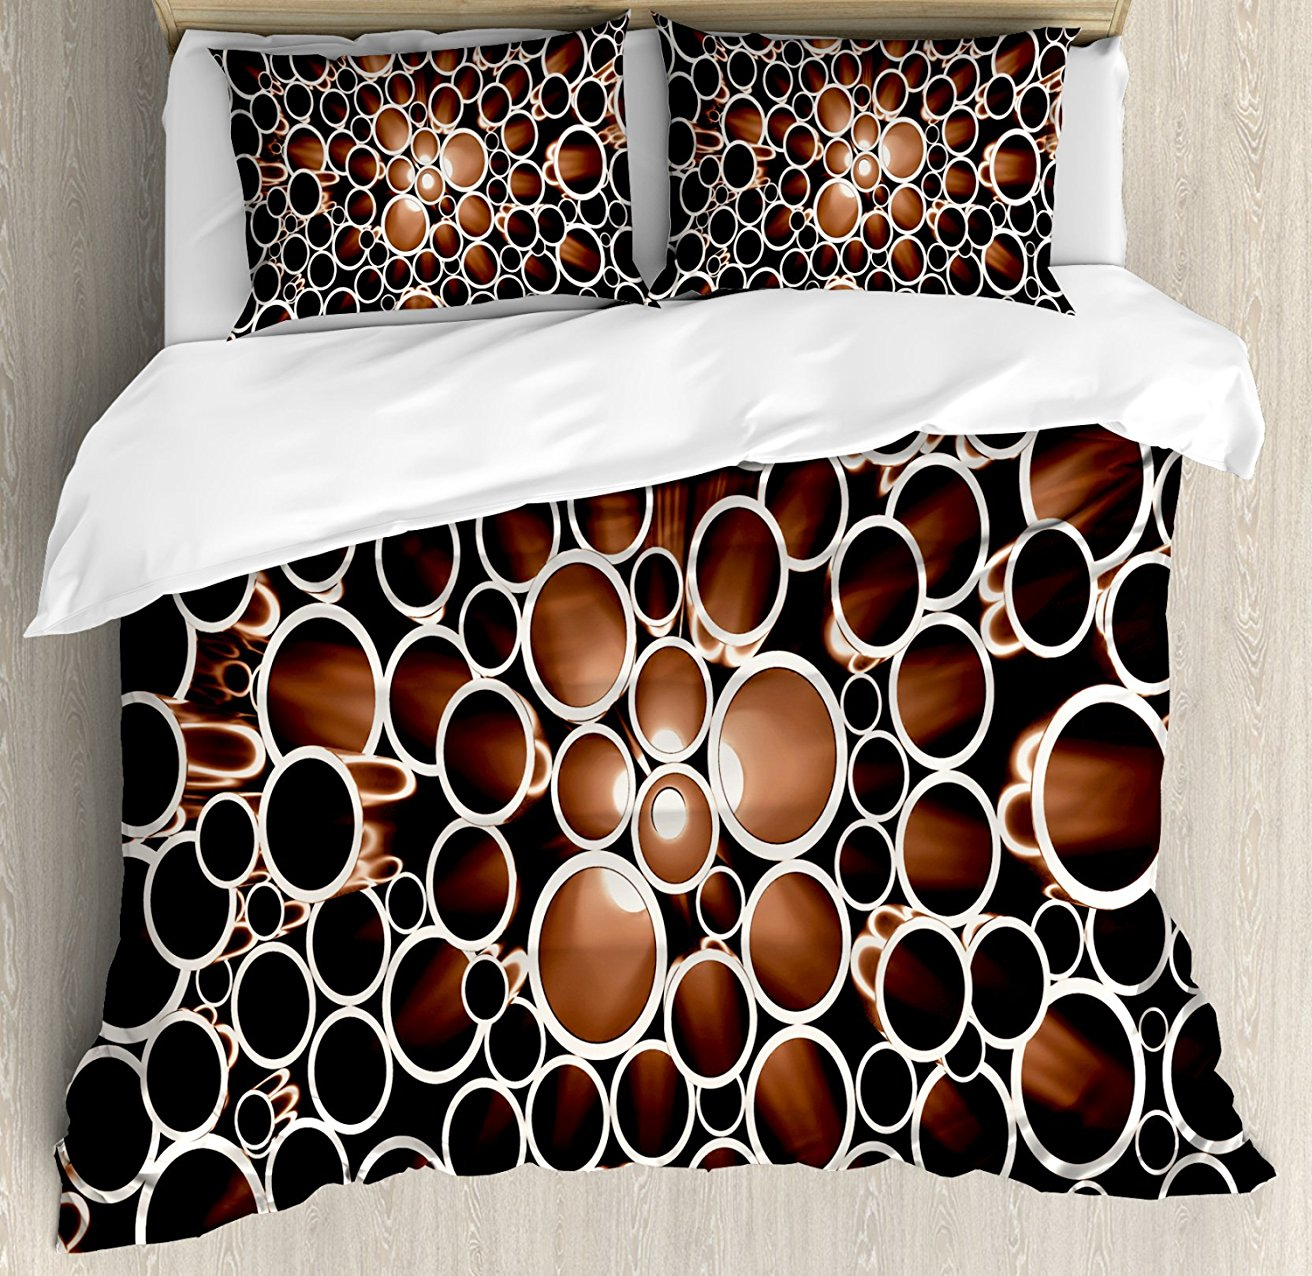 Industrial Duvet Cover Set , Round Pipes in 3D Style Construction Theme Modern Circles Print, 4 Piece Bedding Set